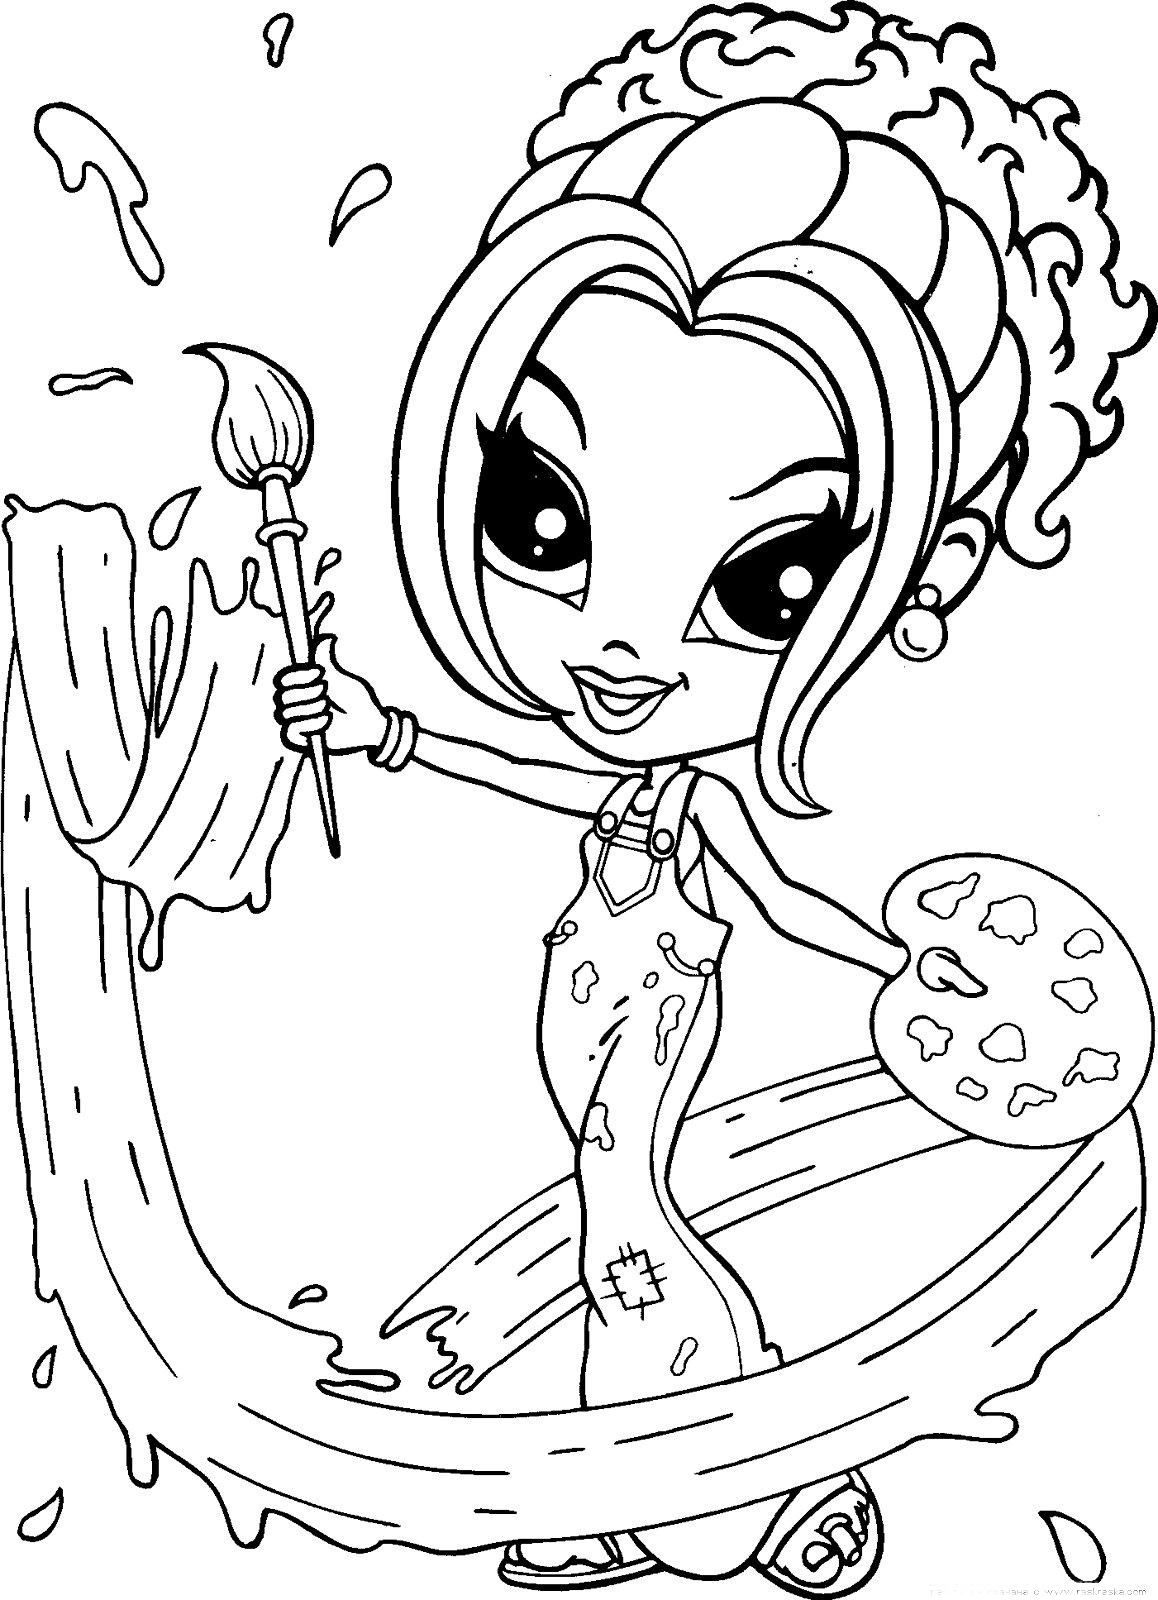 1158x1600 Lisa Frank Coloring Pages To Download And Print For Free Lisa